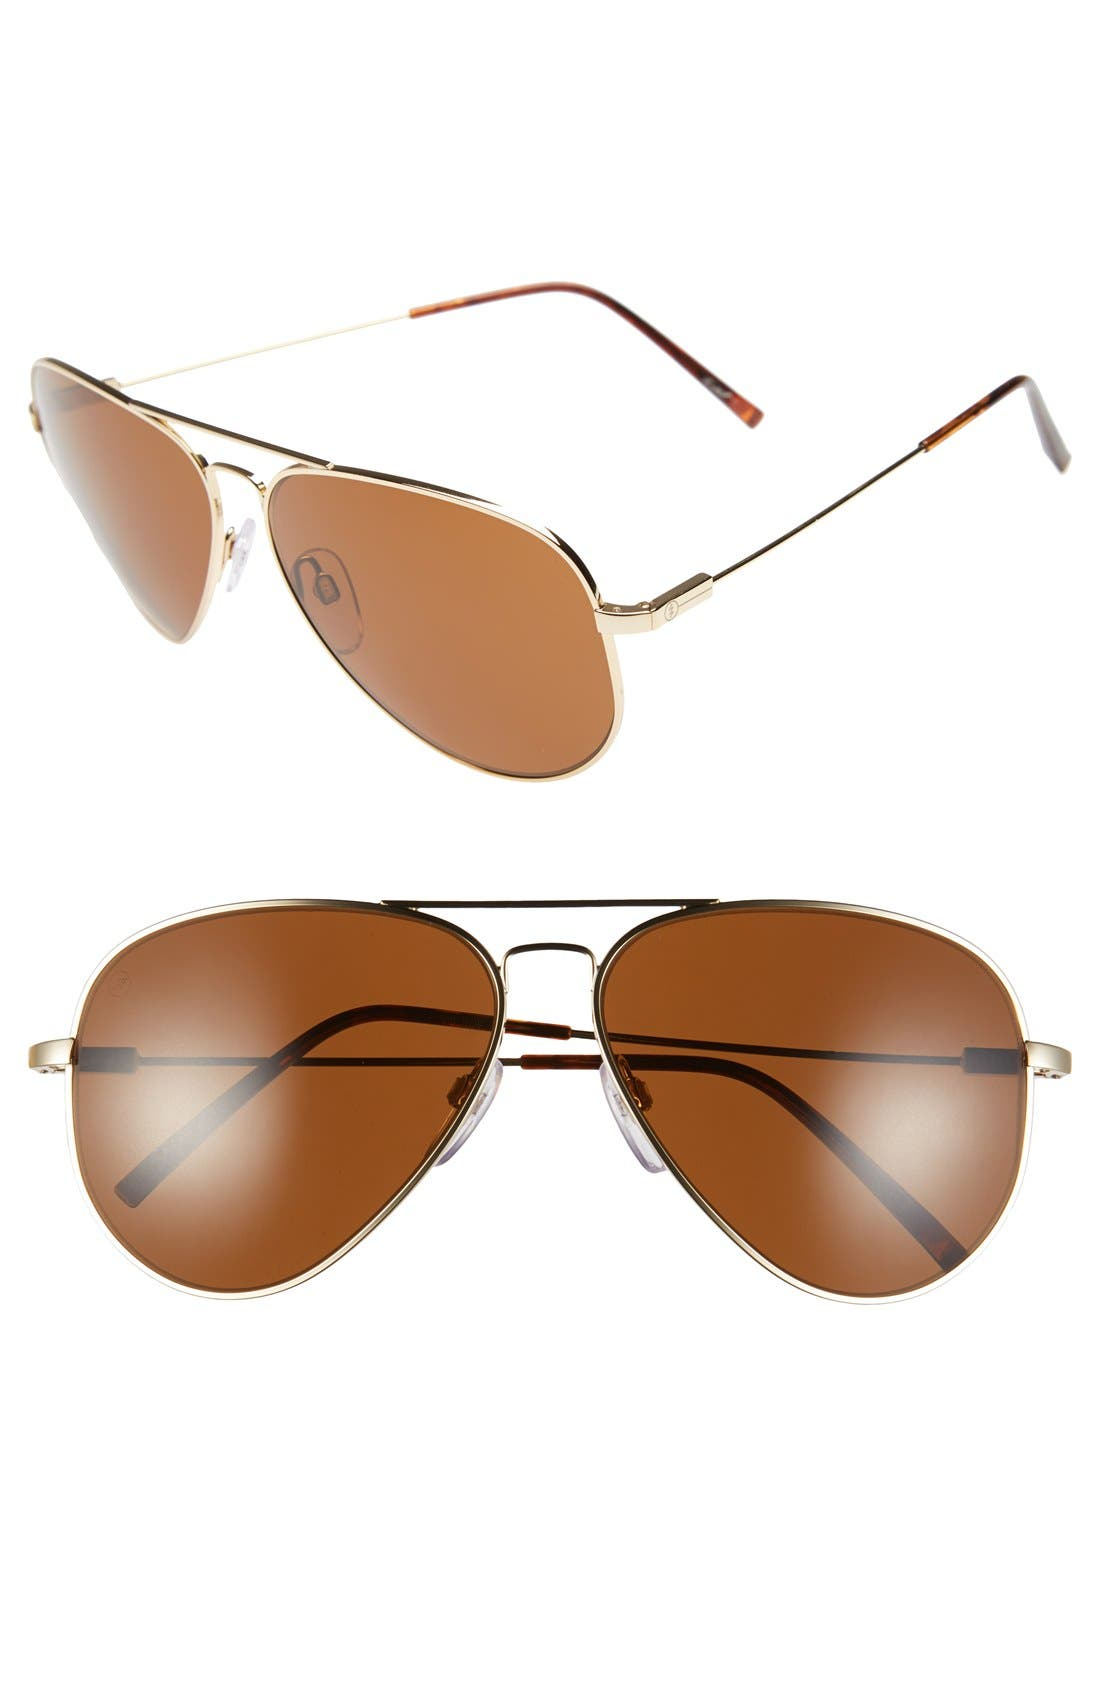 'AV1 XL' 62mm Aviator Sunglasses,                             Main thumbnail 1, color,                             GOLD/ BRONZE